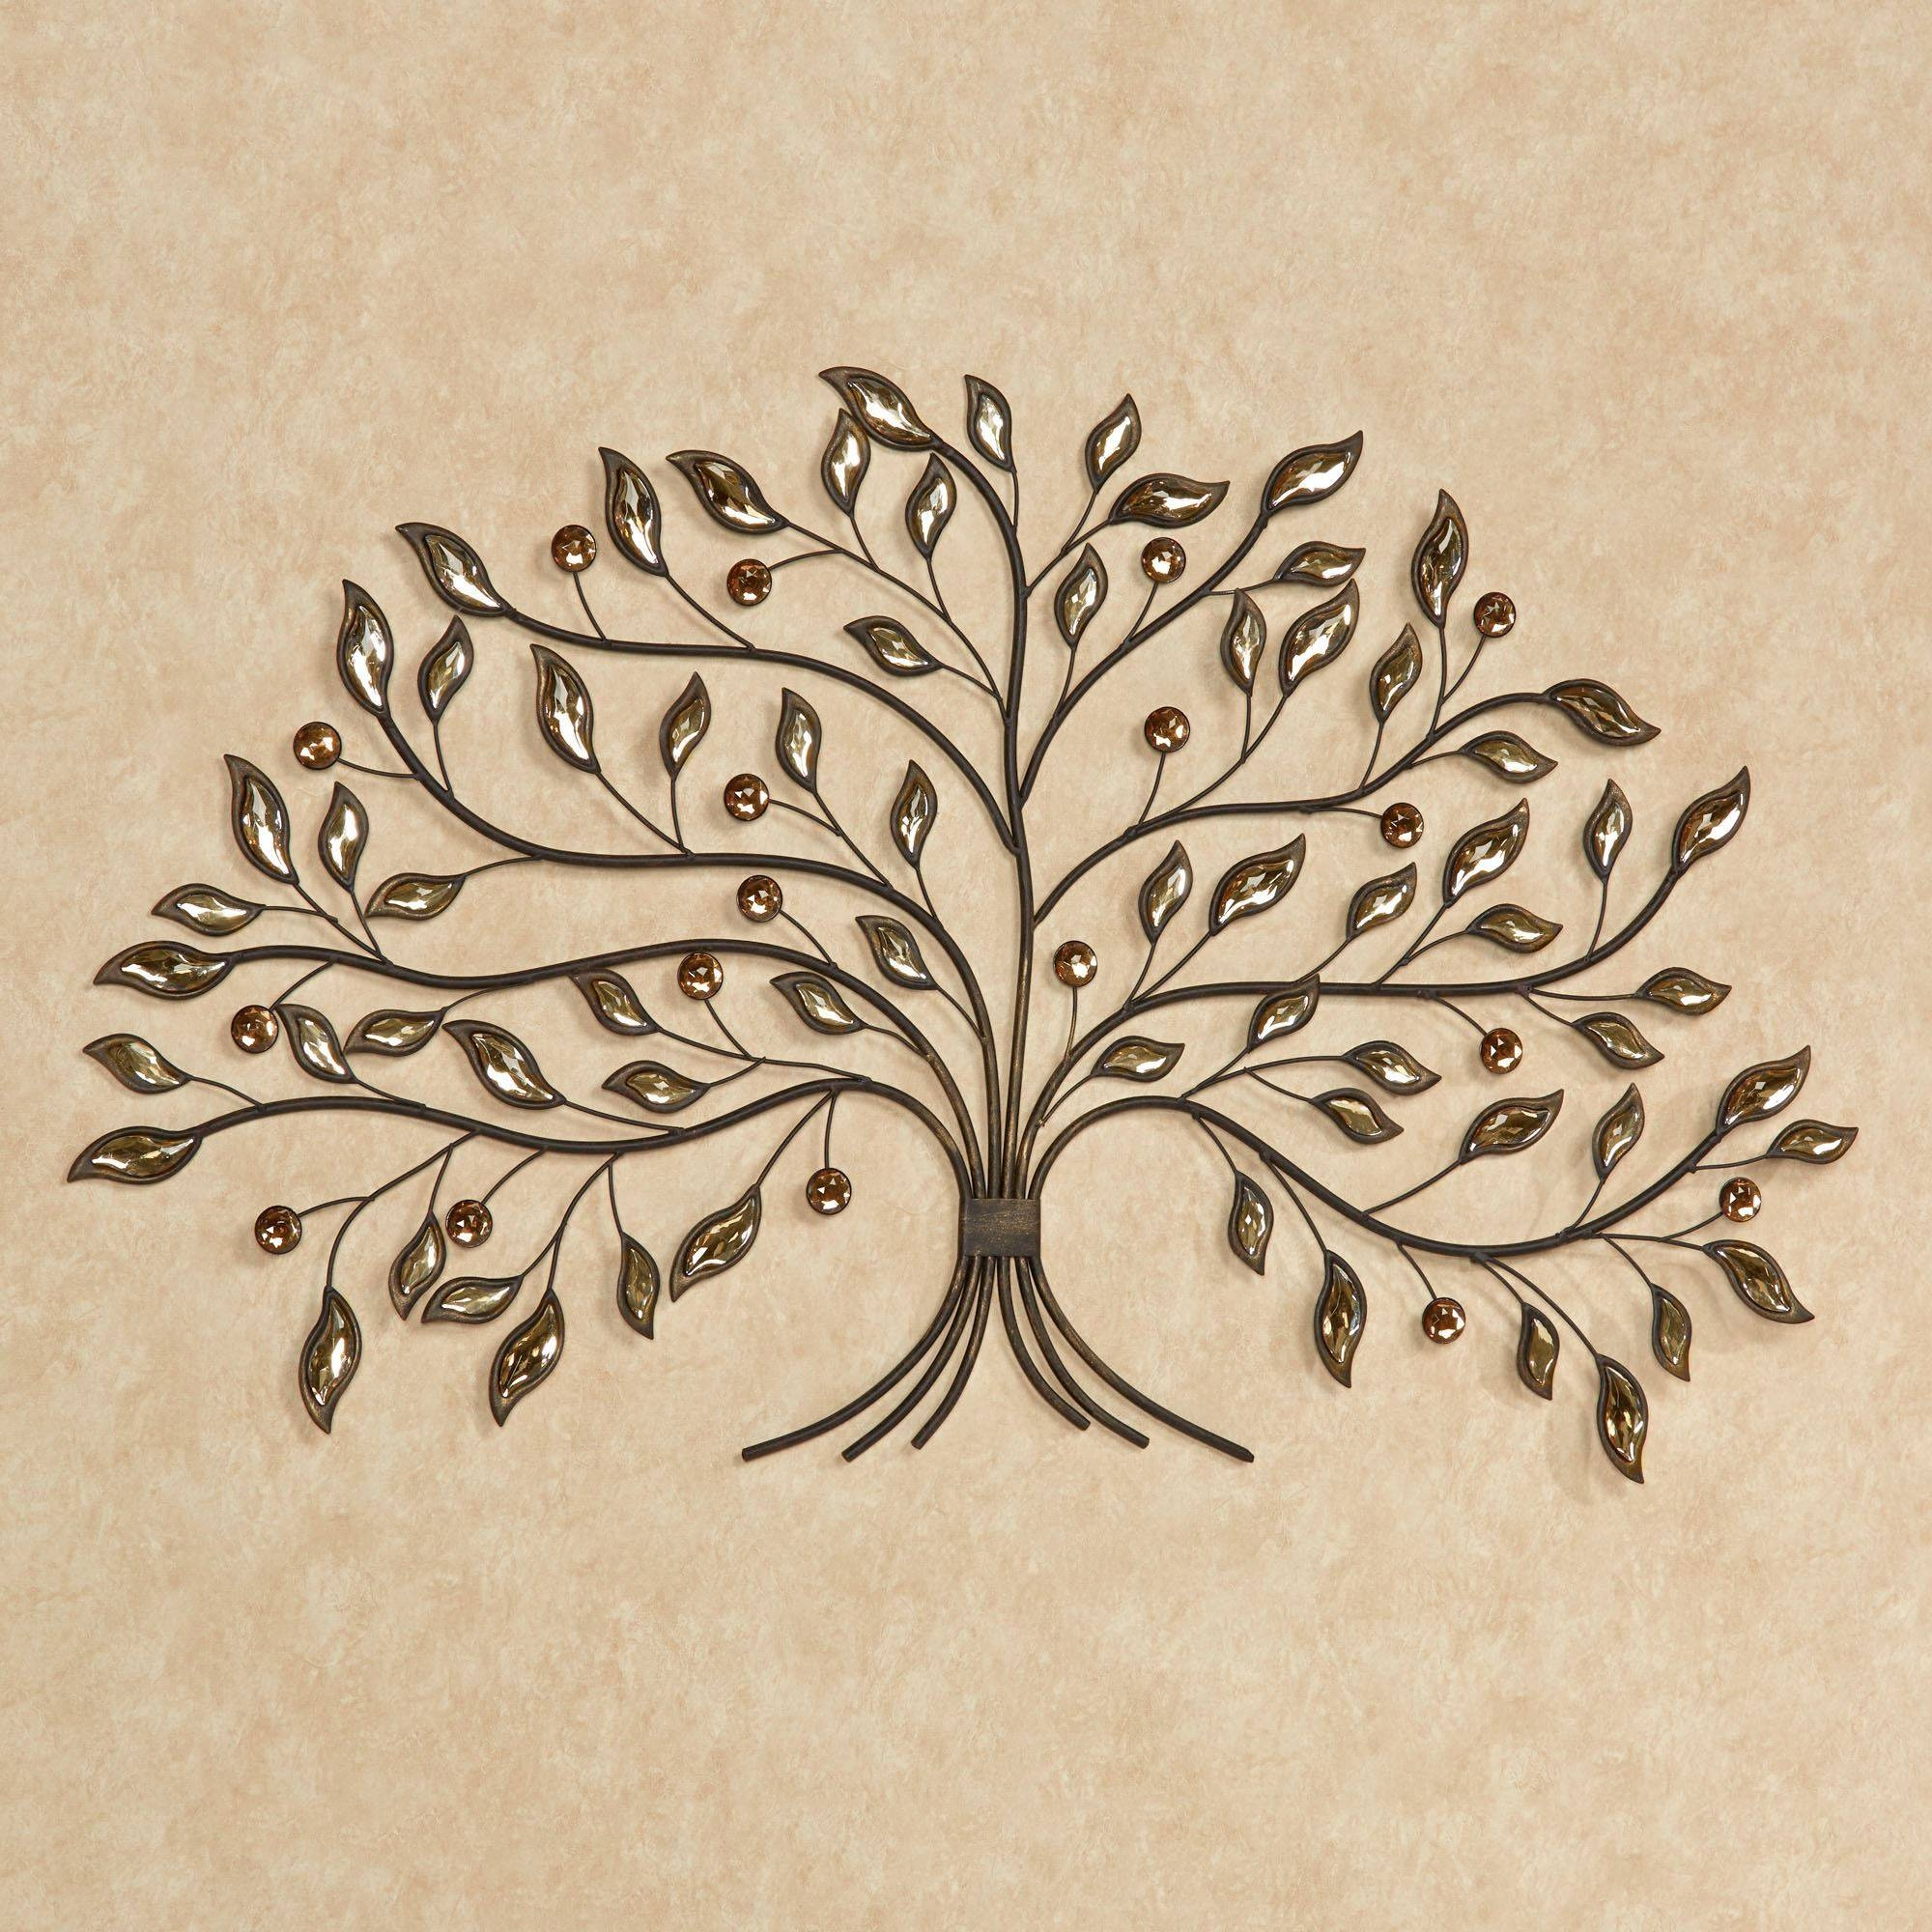 Alexandra Vining Gem Tree Metal Wall Art For Most Recent Metal Wall Art Tree (View 6 of 20)